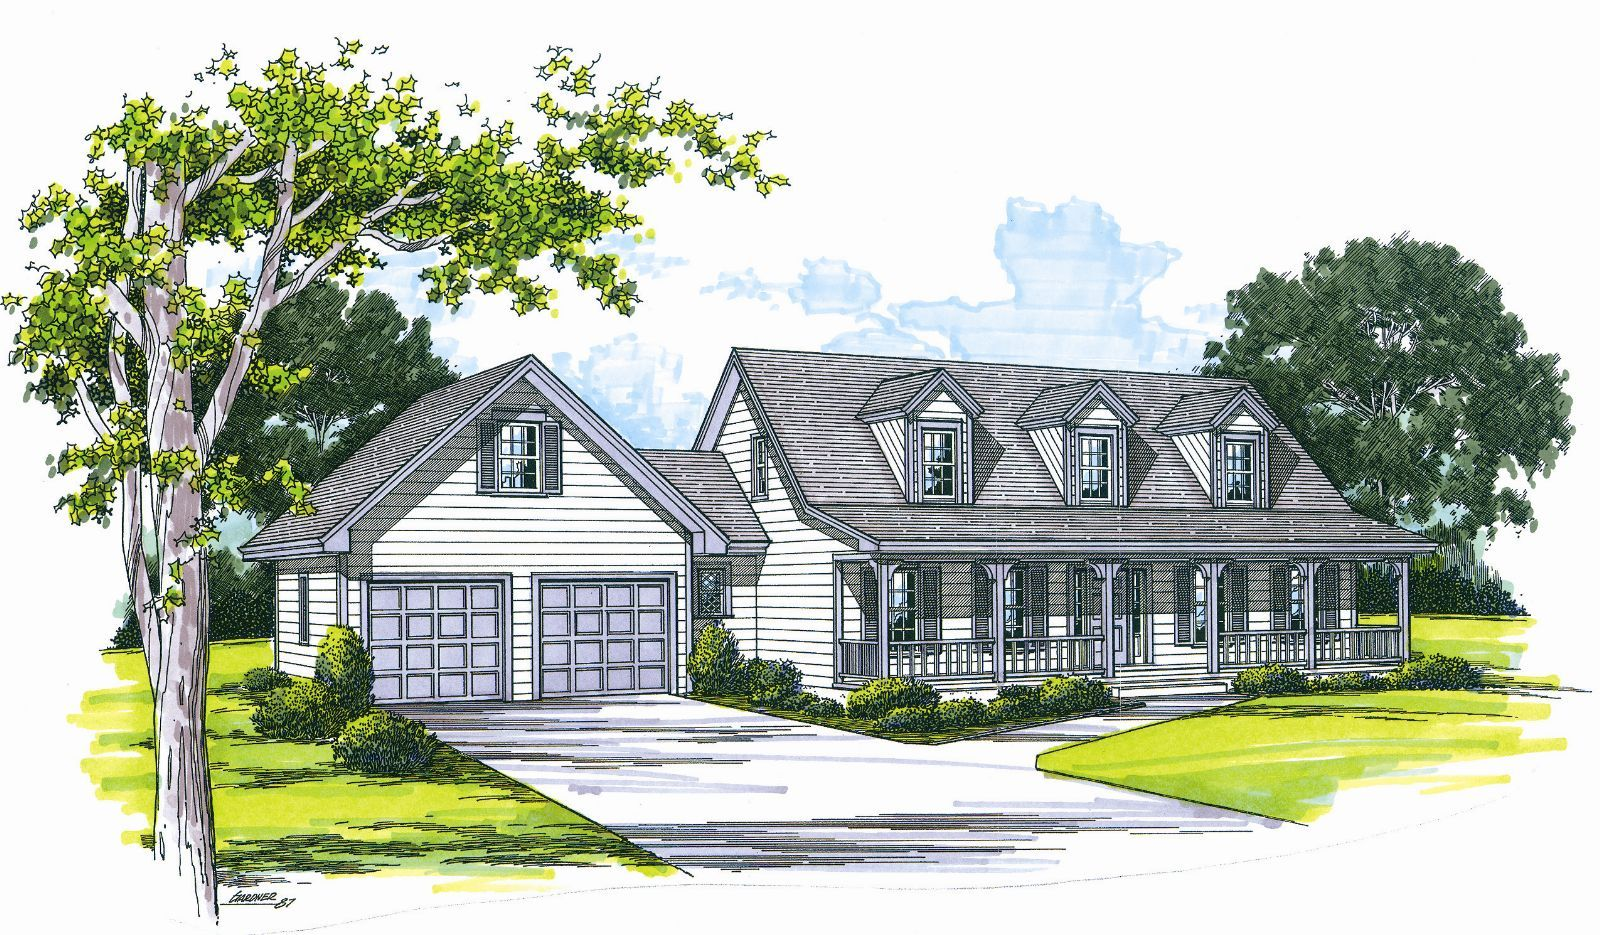 This 1 5 story cape cod features 3386 sq feet call us at for Single story cape cod house plans